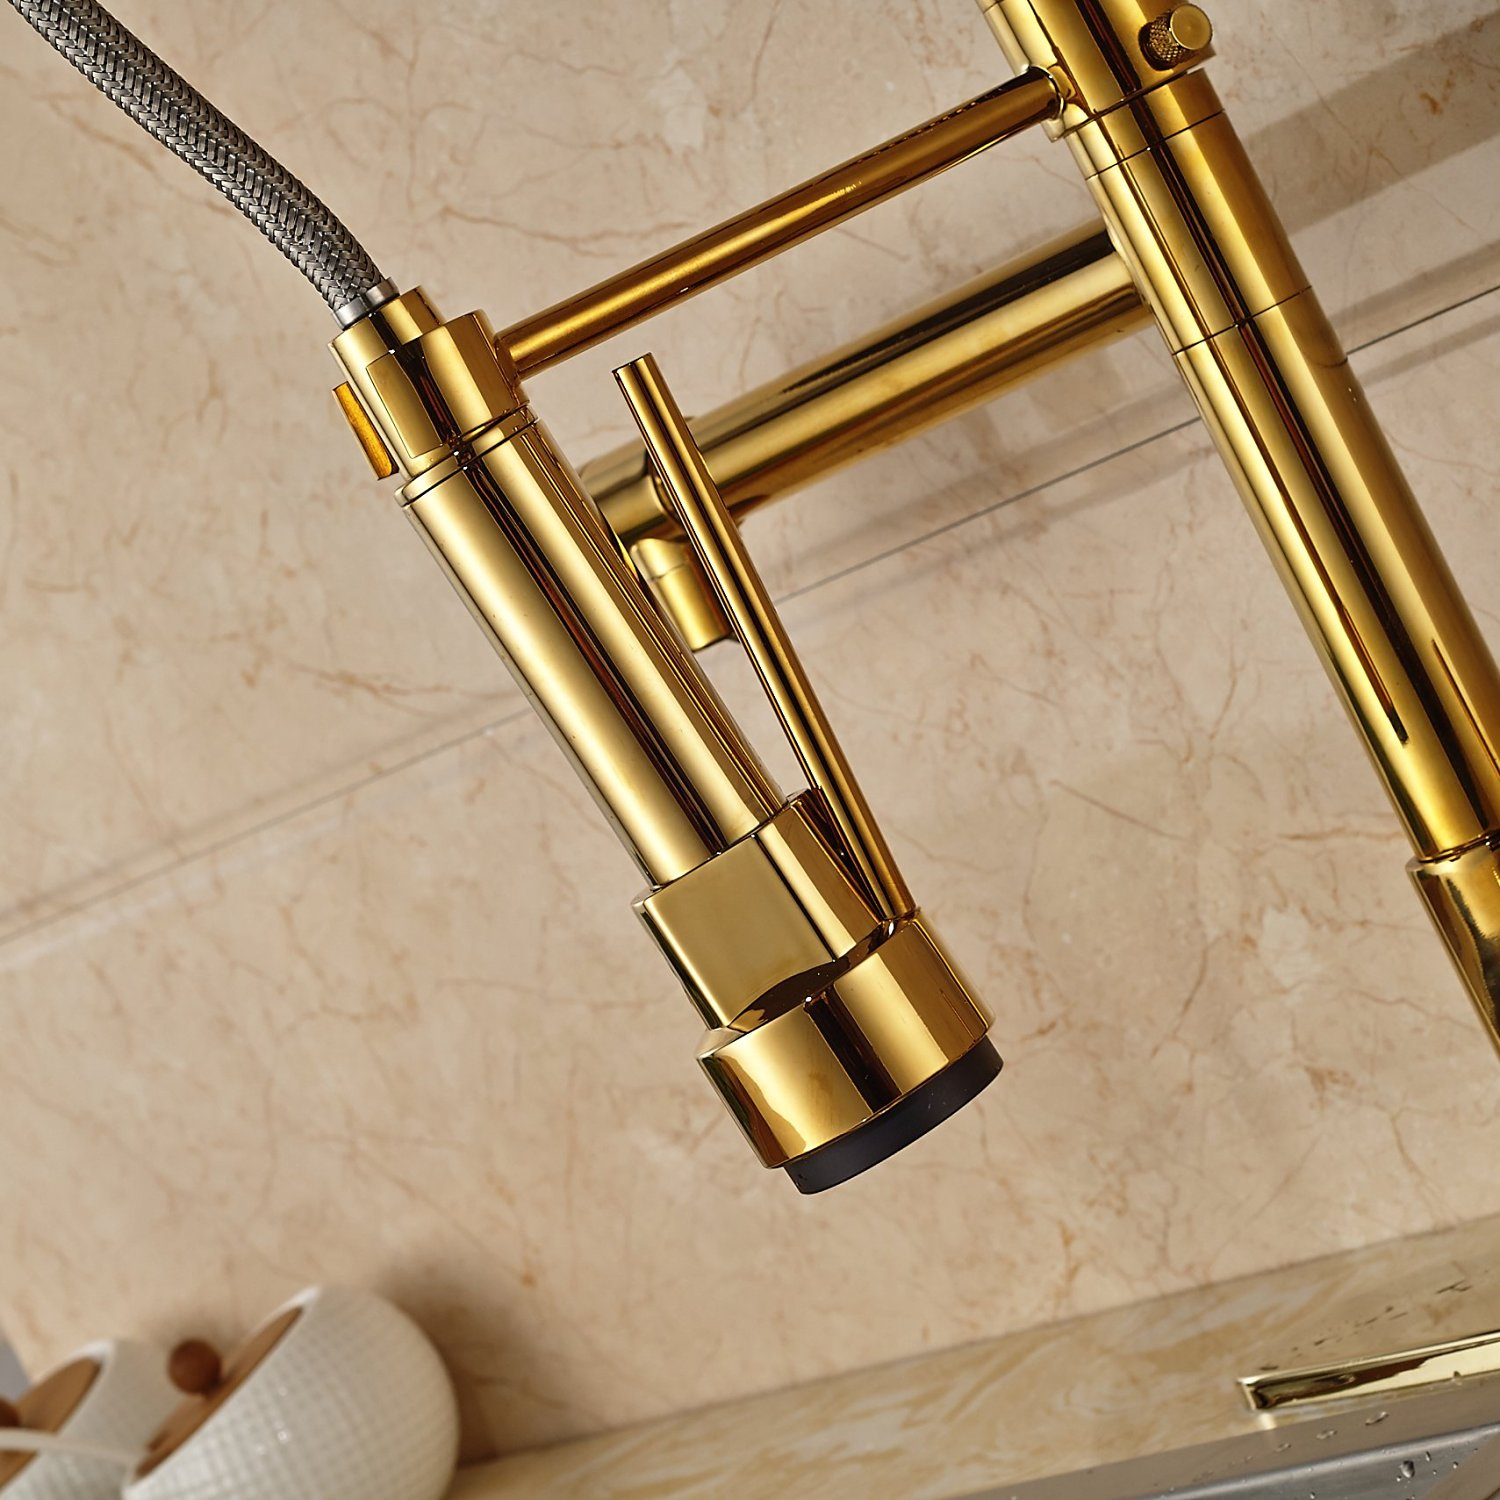 fsrks kitchen faucet pull down Curitiba Deck Mounted Gold Finish Kitchen Sink Faucet with Pull Down Sprayer